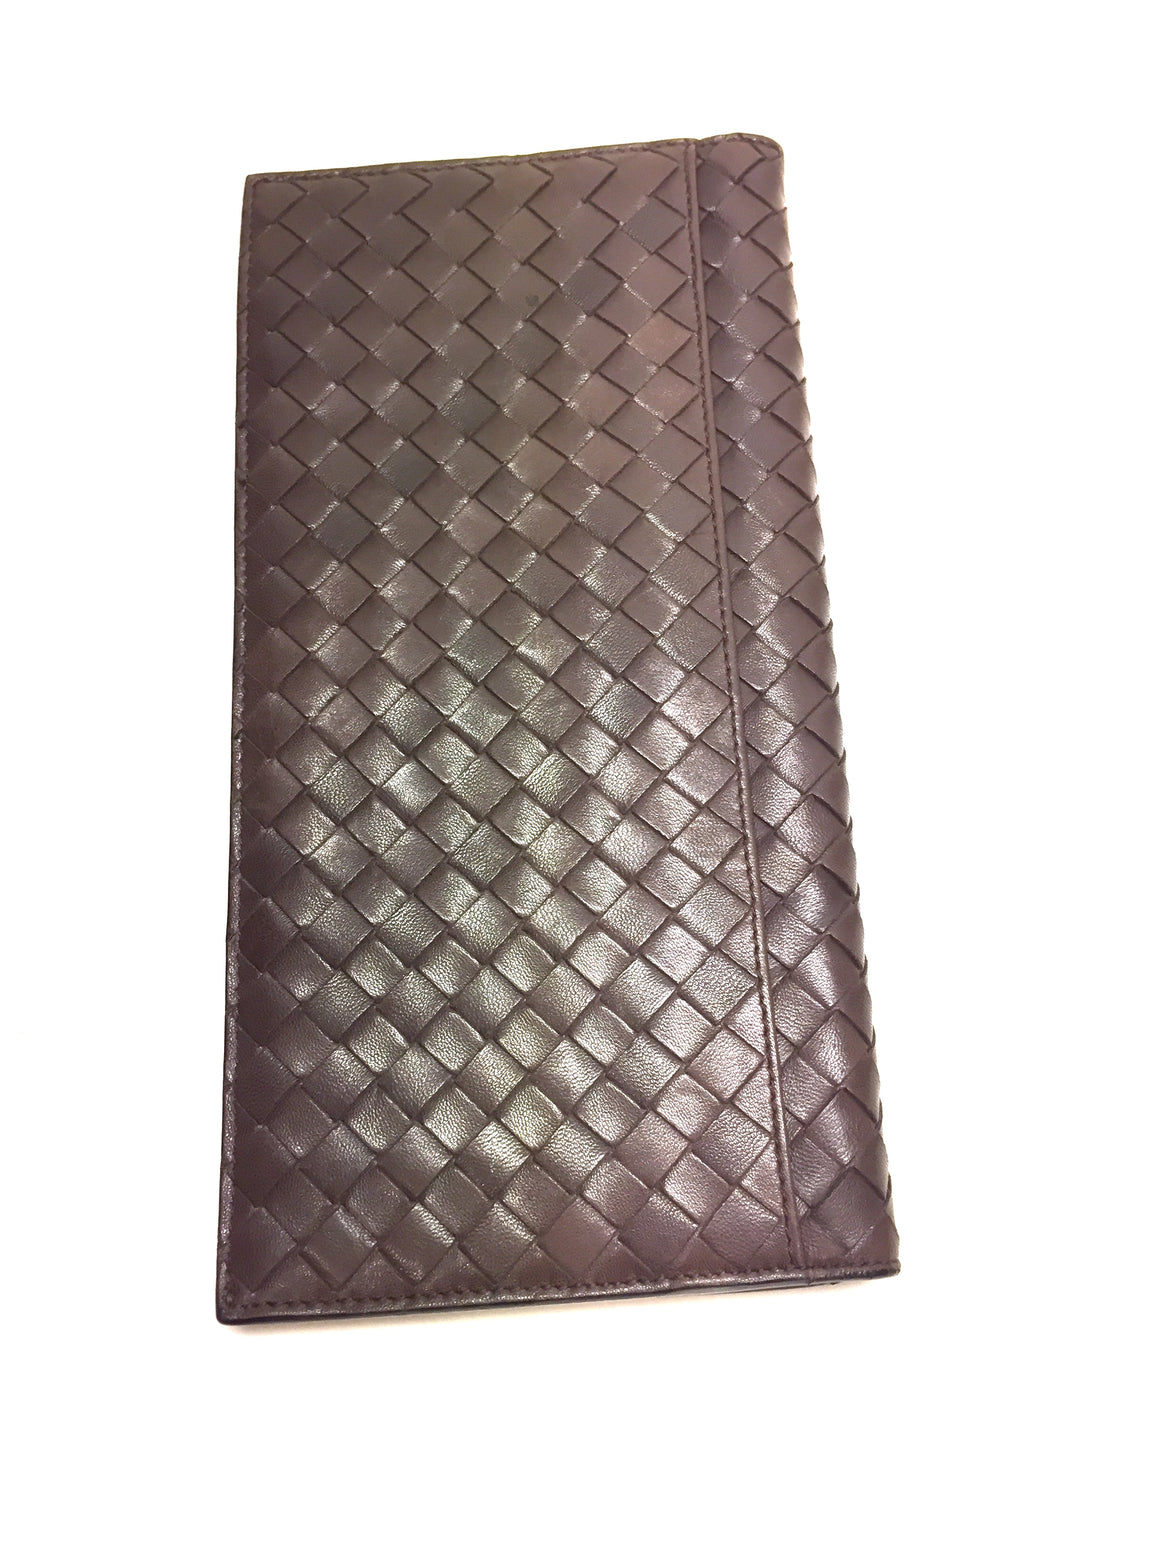 BOTTEGA VENETA Brown Intreciatto Woven Leather Long Wallet